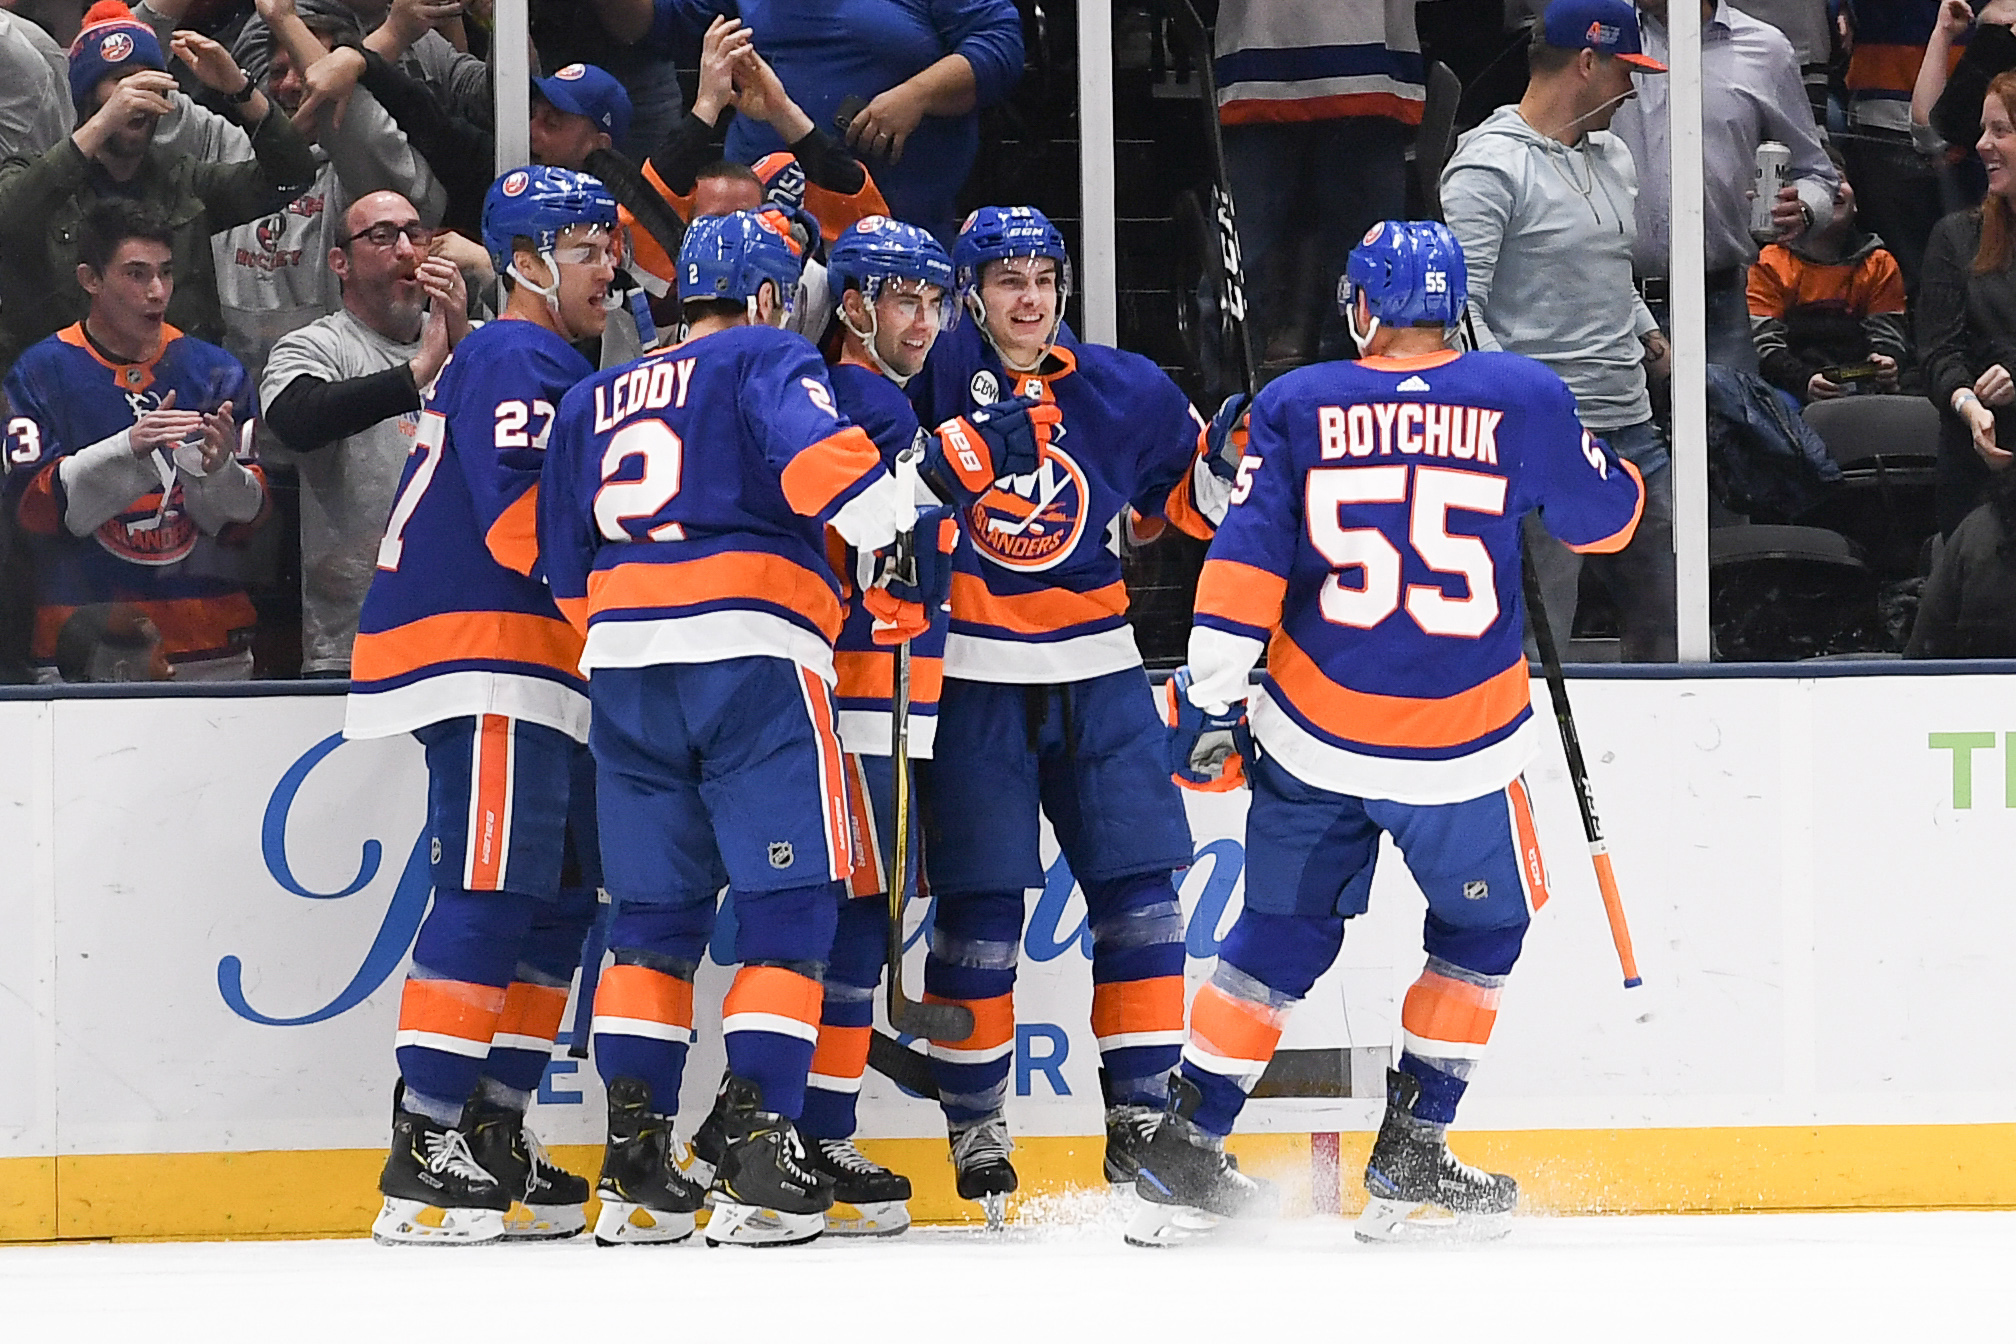 Mar 30, 2019; Uniondale, NY, USA; New York Islanders celebrate the goal by New York Islanders right wing Jordan Eberle (7) against the Buffalo Sabres during the first period at Nassau Veterans Memorial Coliseum. Mandatory Credit: Dennis Schneidler-USA TODAY Sports